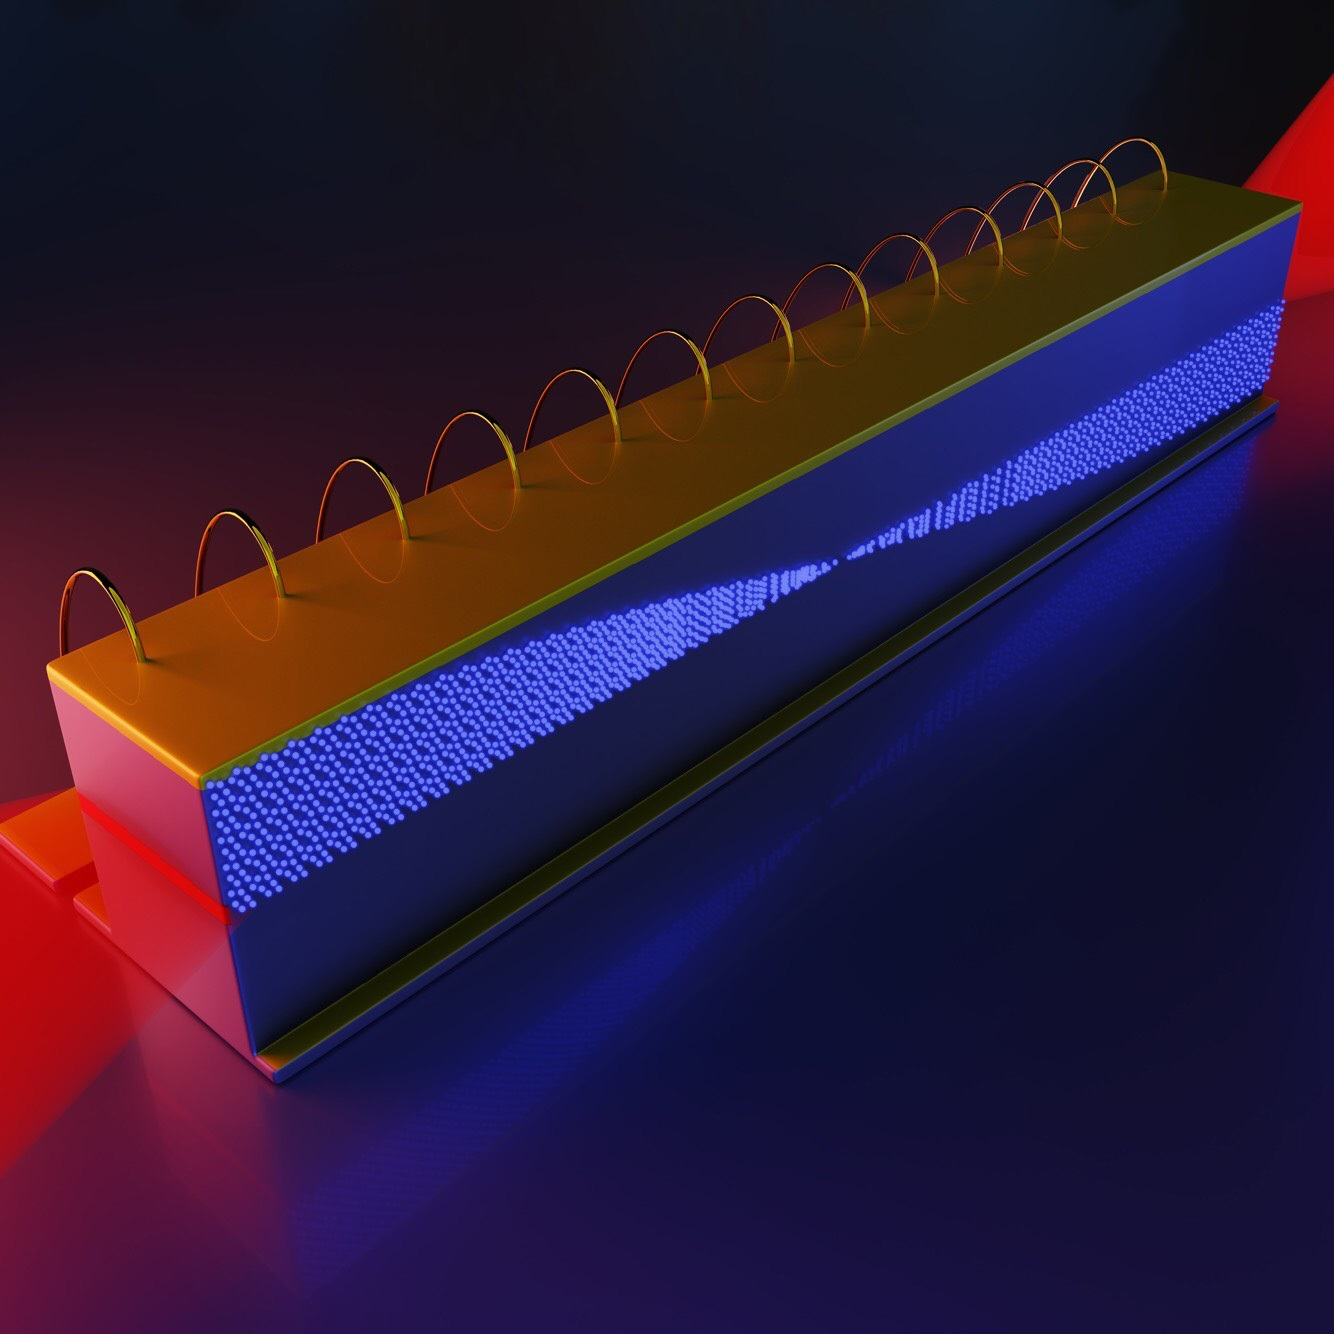 Inside an infrared frequency comb in a quantum cascade laser, the different frequencies of light beat together to generate microwave radiation